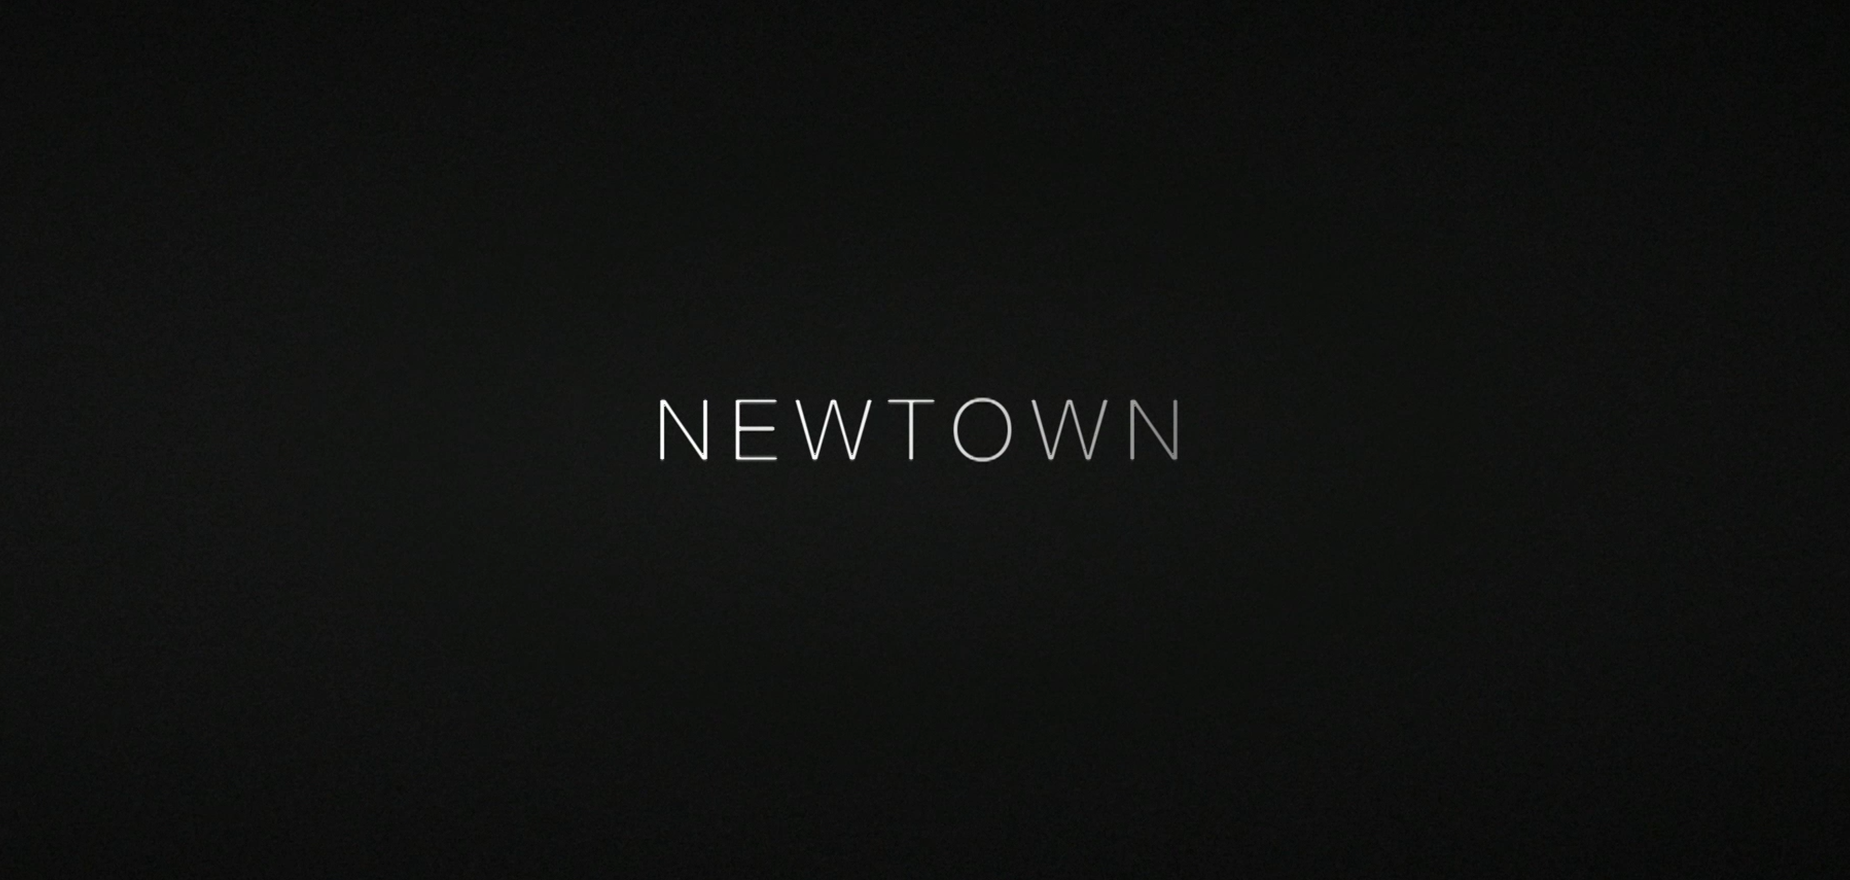 Newtown - Mile 22 LLC, Independent Television Service (ITVS), in association with KA Snyder Productions, Cuomo Cole Productions